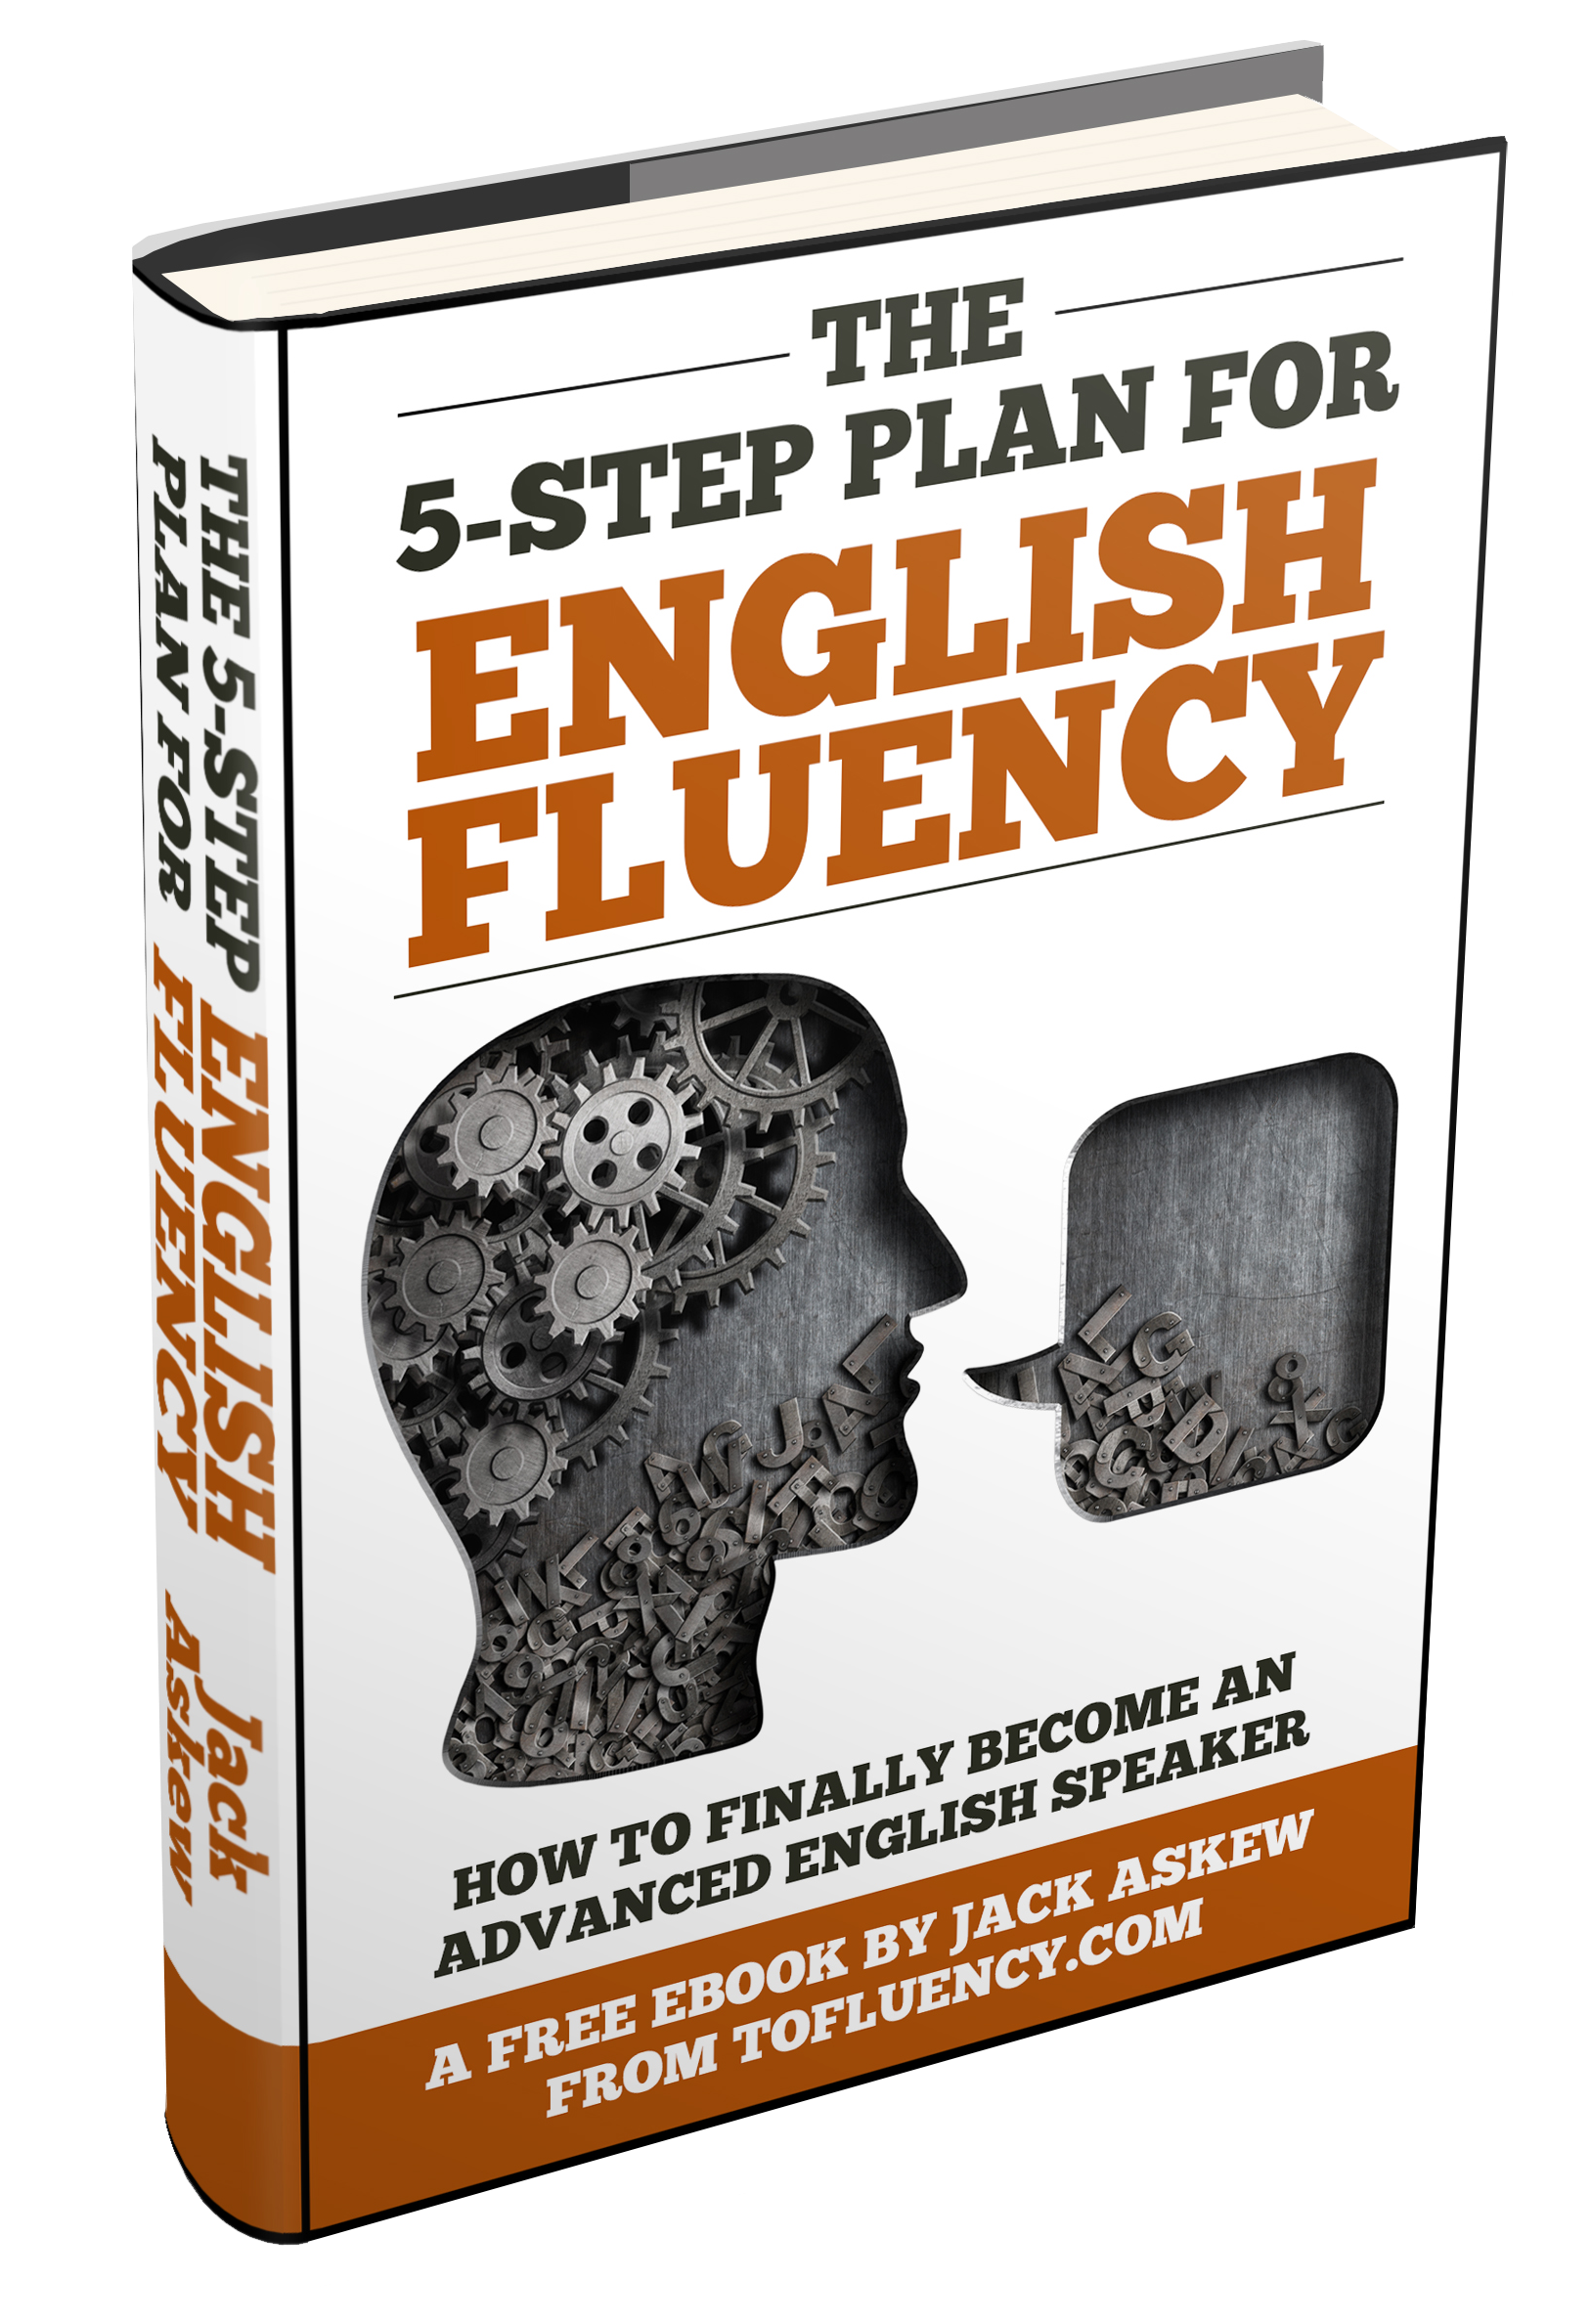 Textbook clipart english textbook. How to learn the